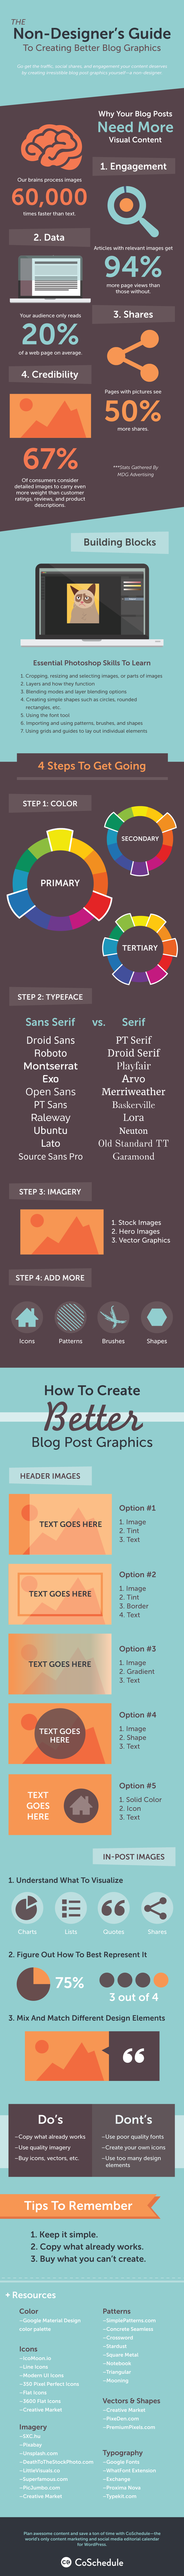 blog-graphics-infographic.png